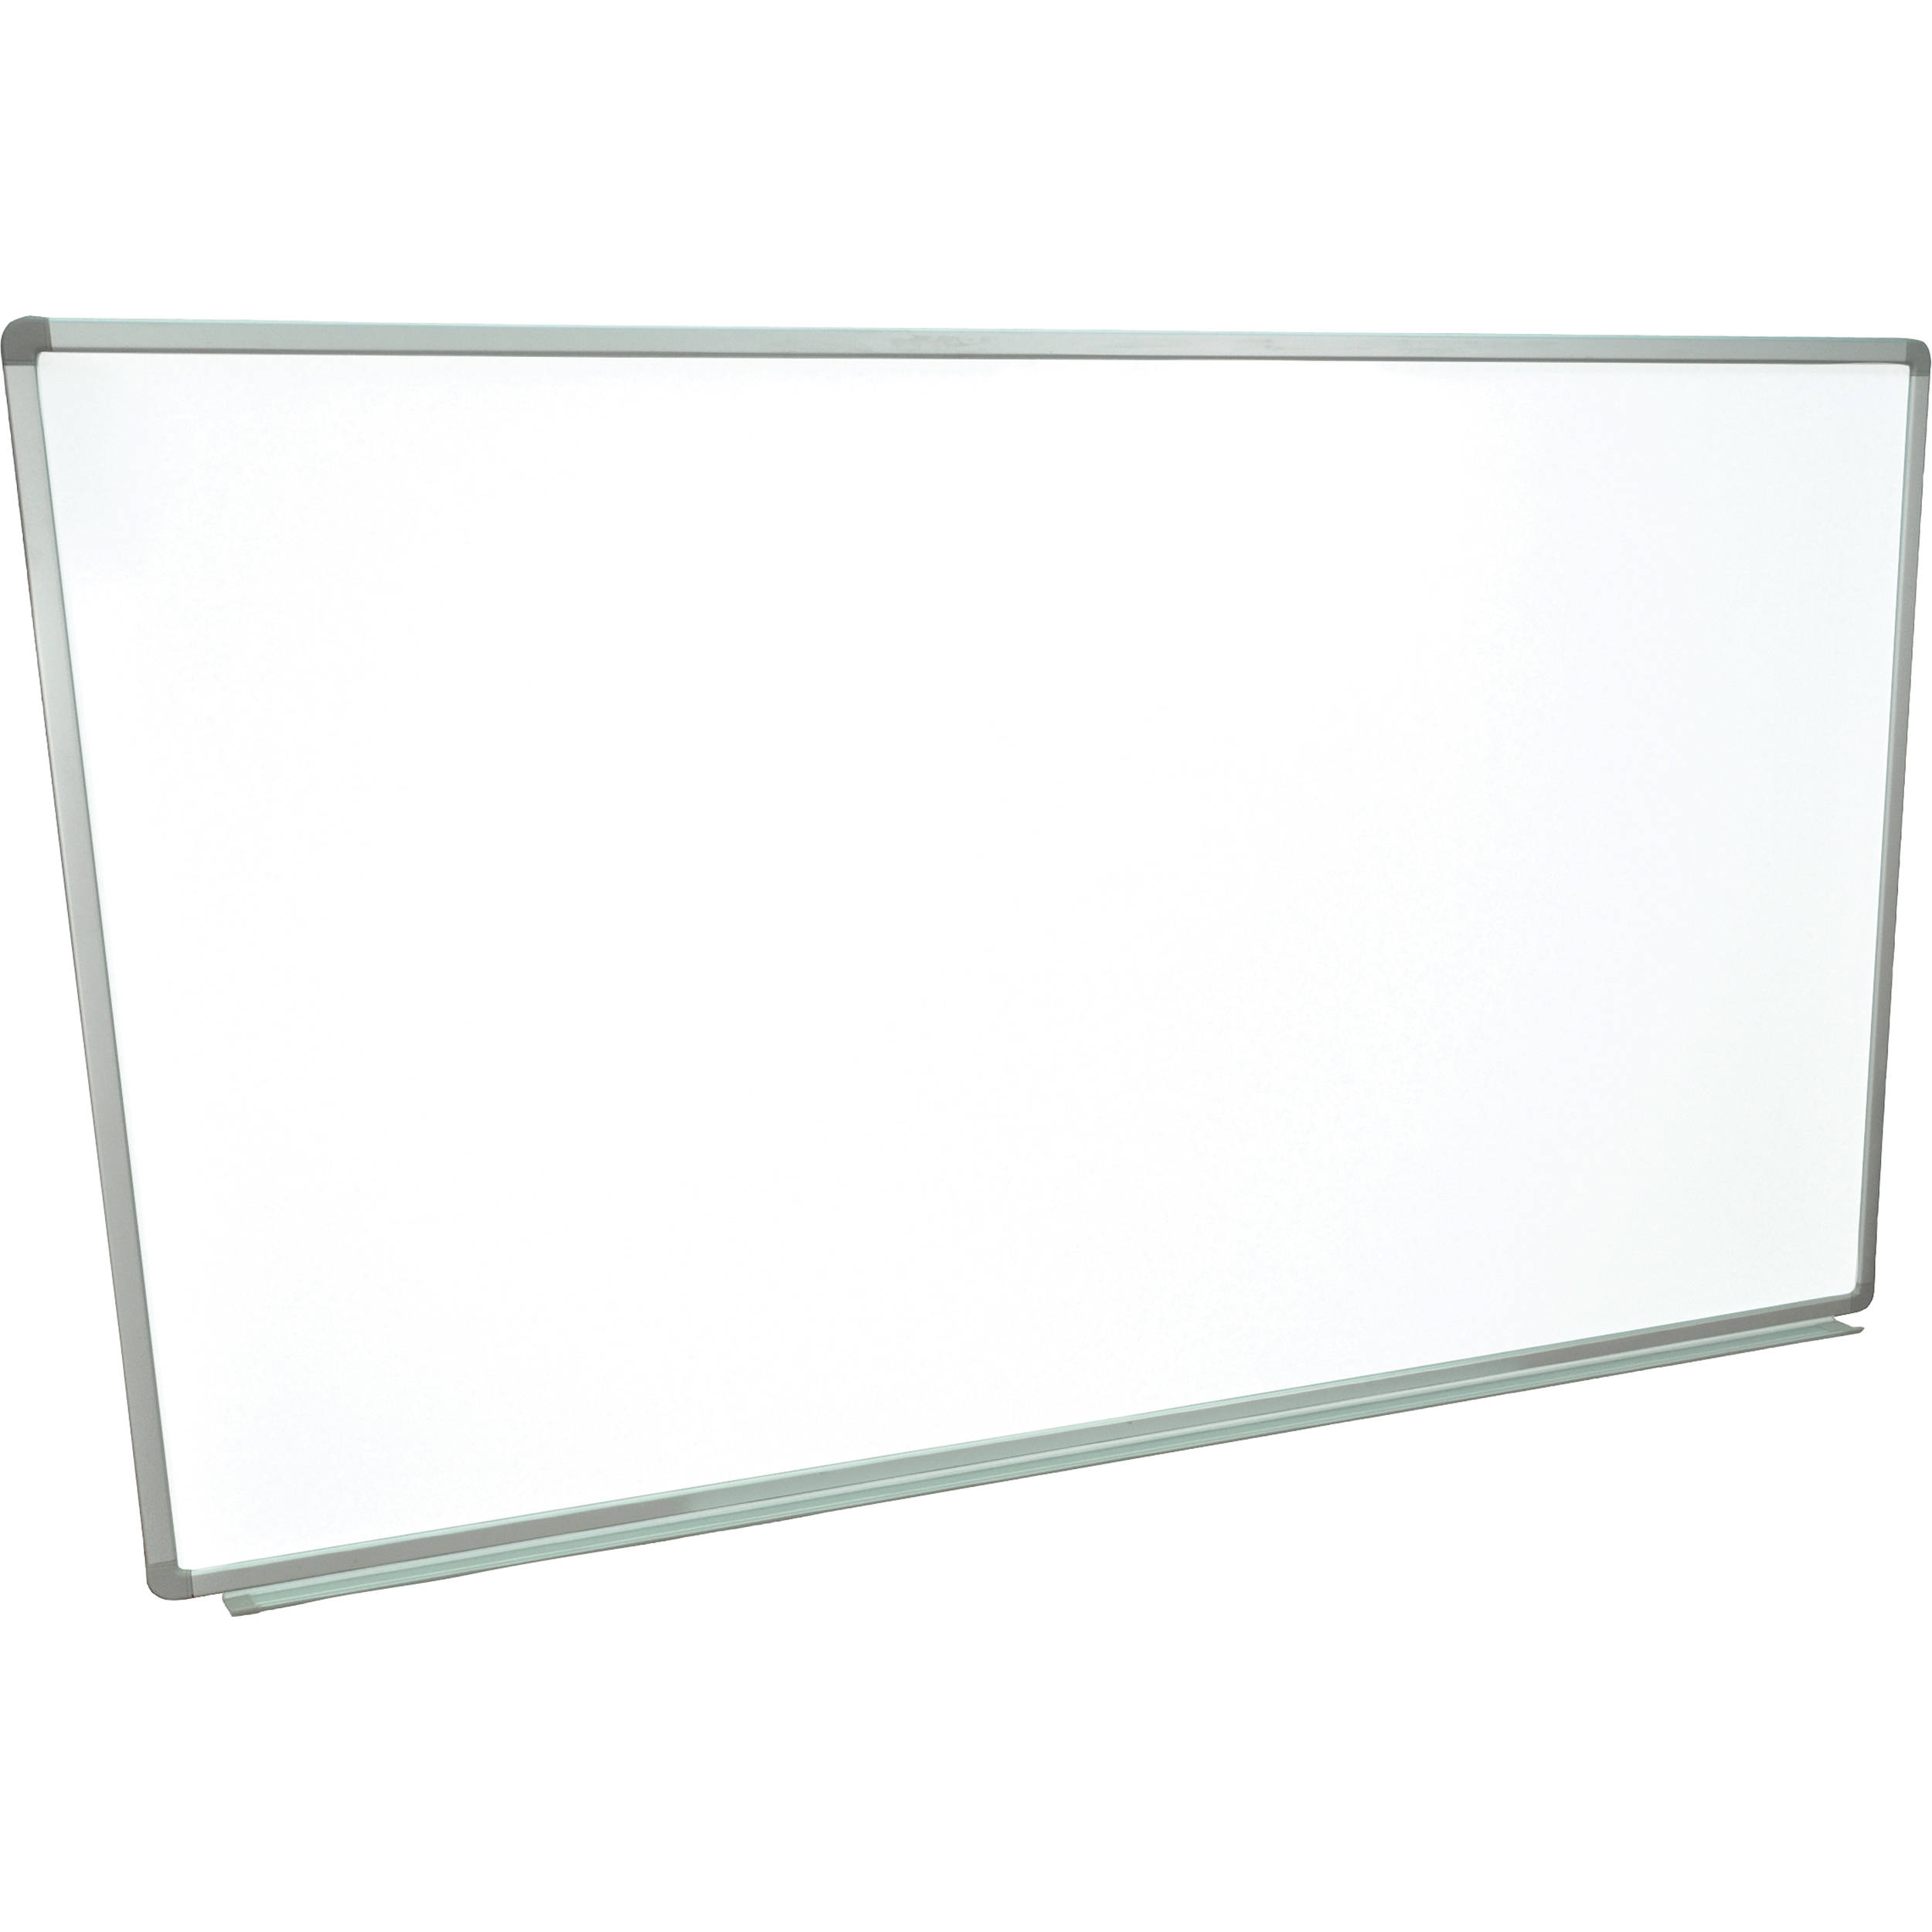 luxor wall mountable magnetic whiteboard 72 x 40 - Magnetic White Board